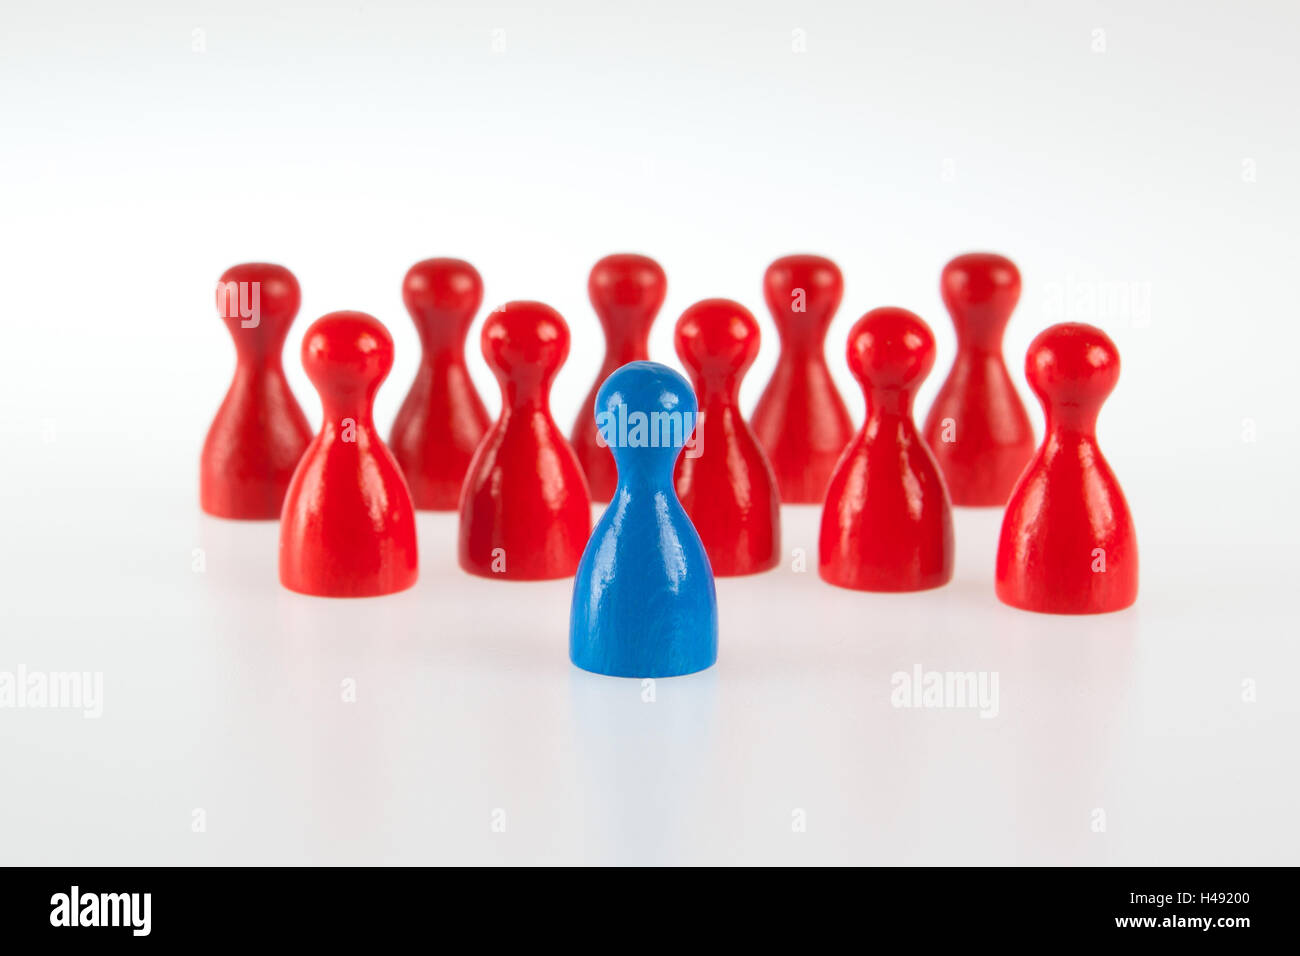 Gaming pieces symbolise team and lead figure, - Stock Image